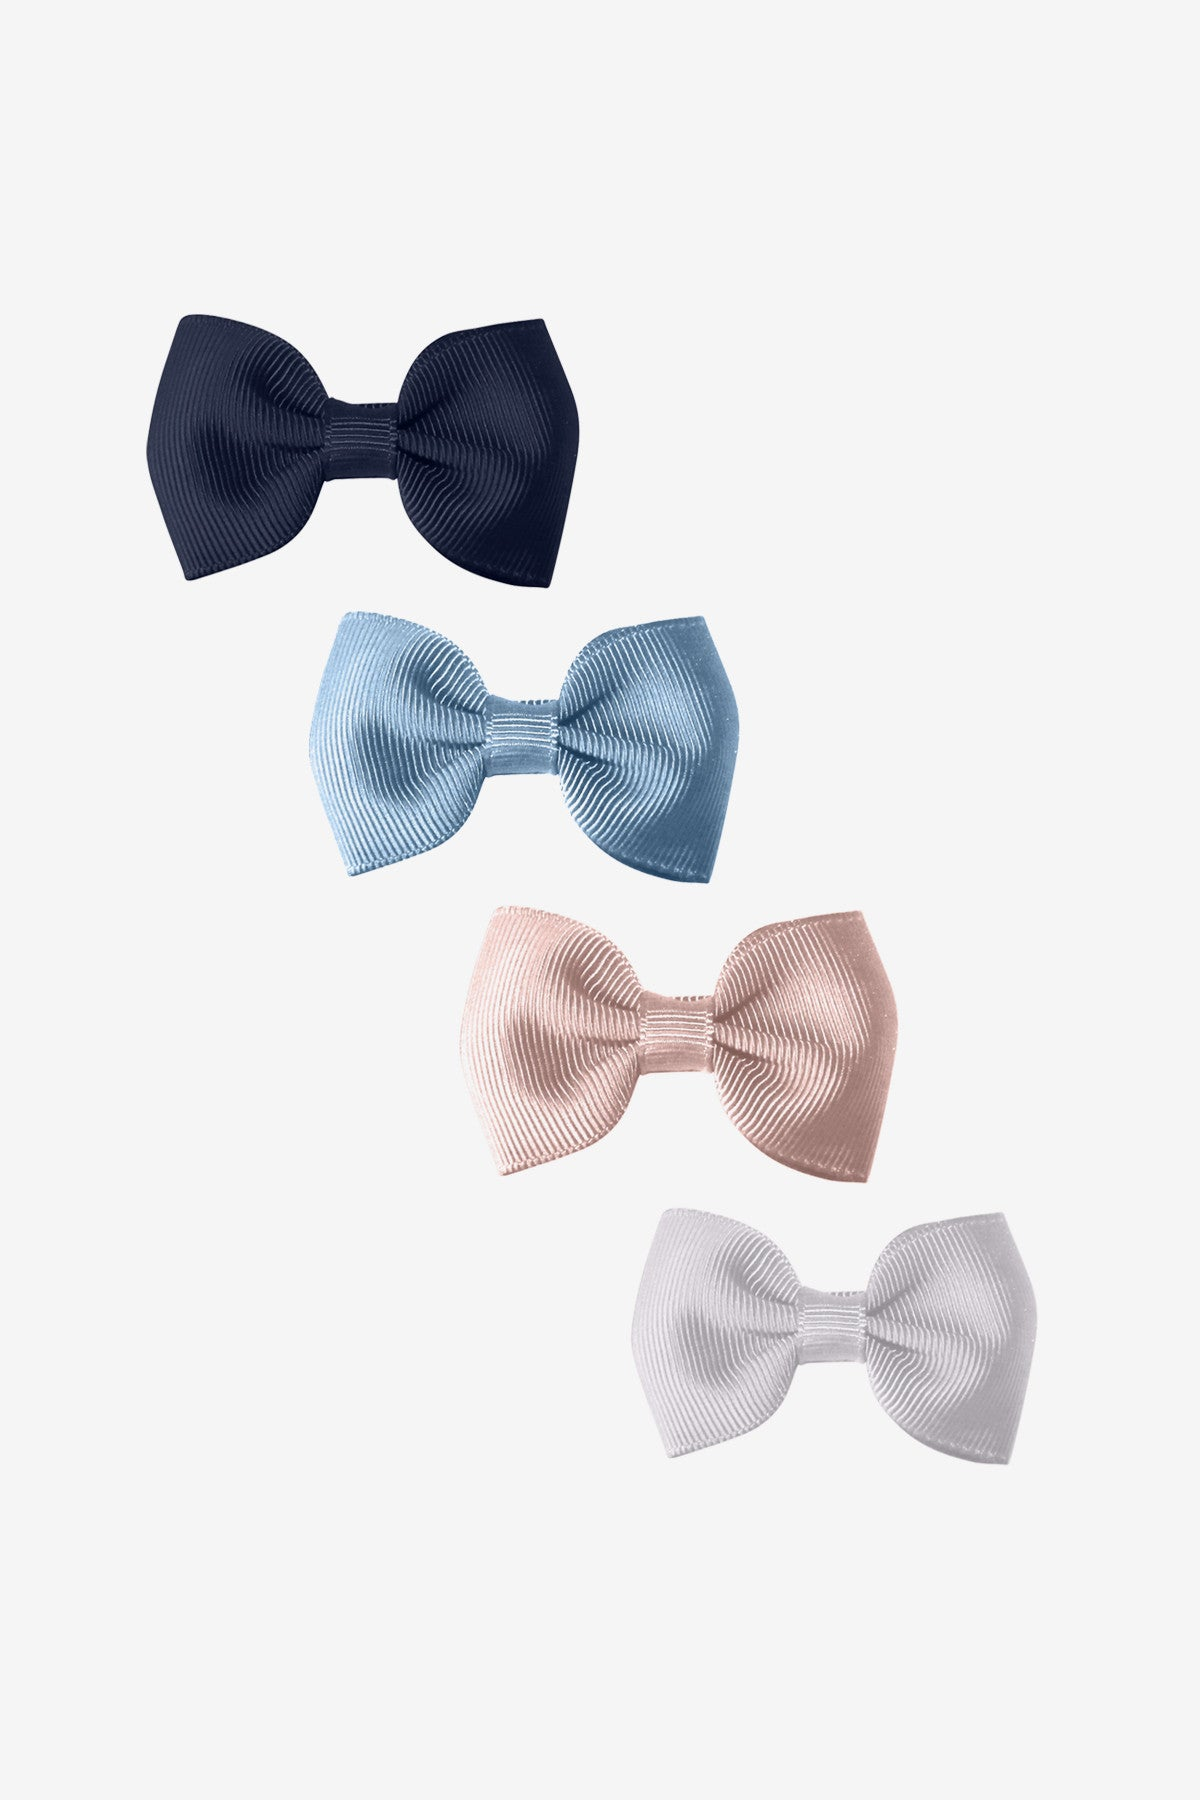 4-pack of Hair Bows - Classic